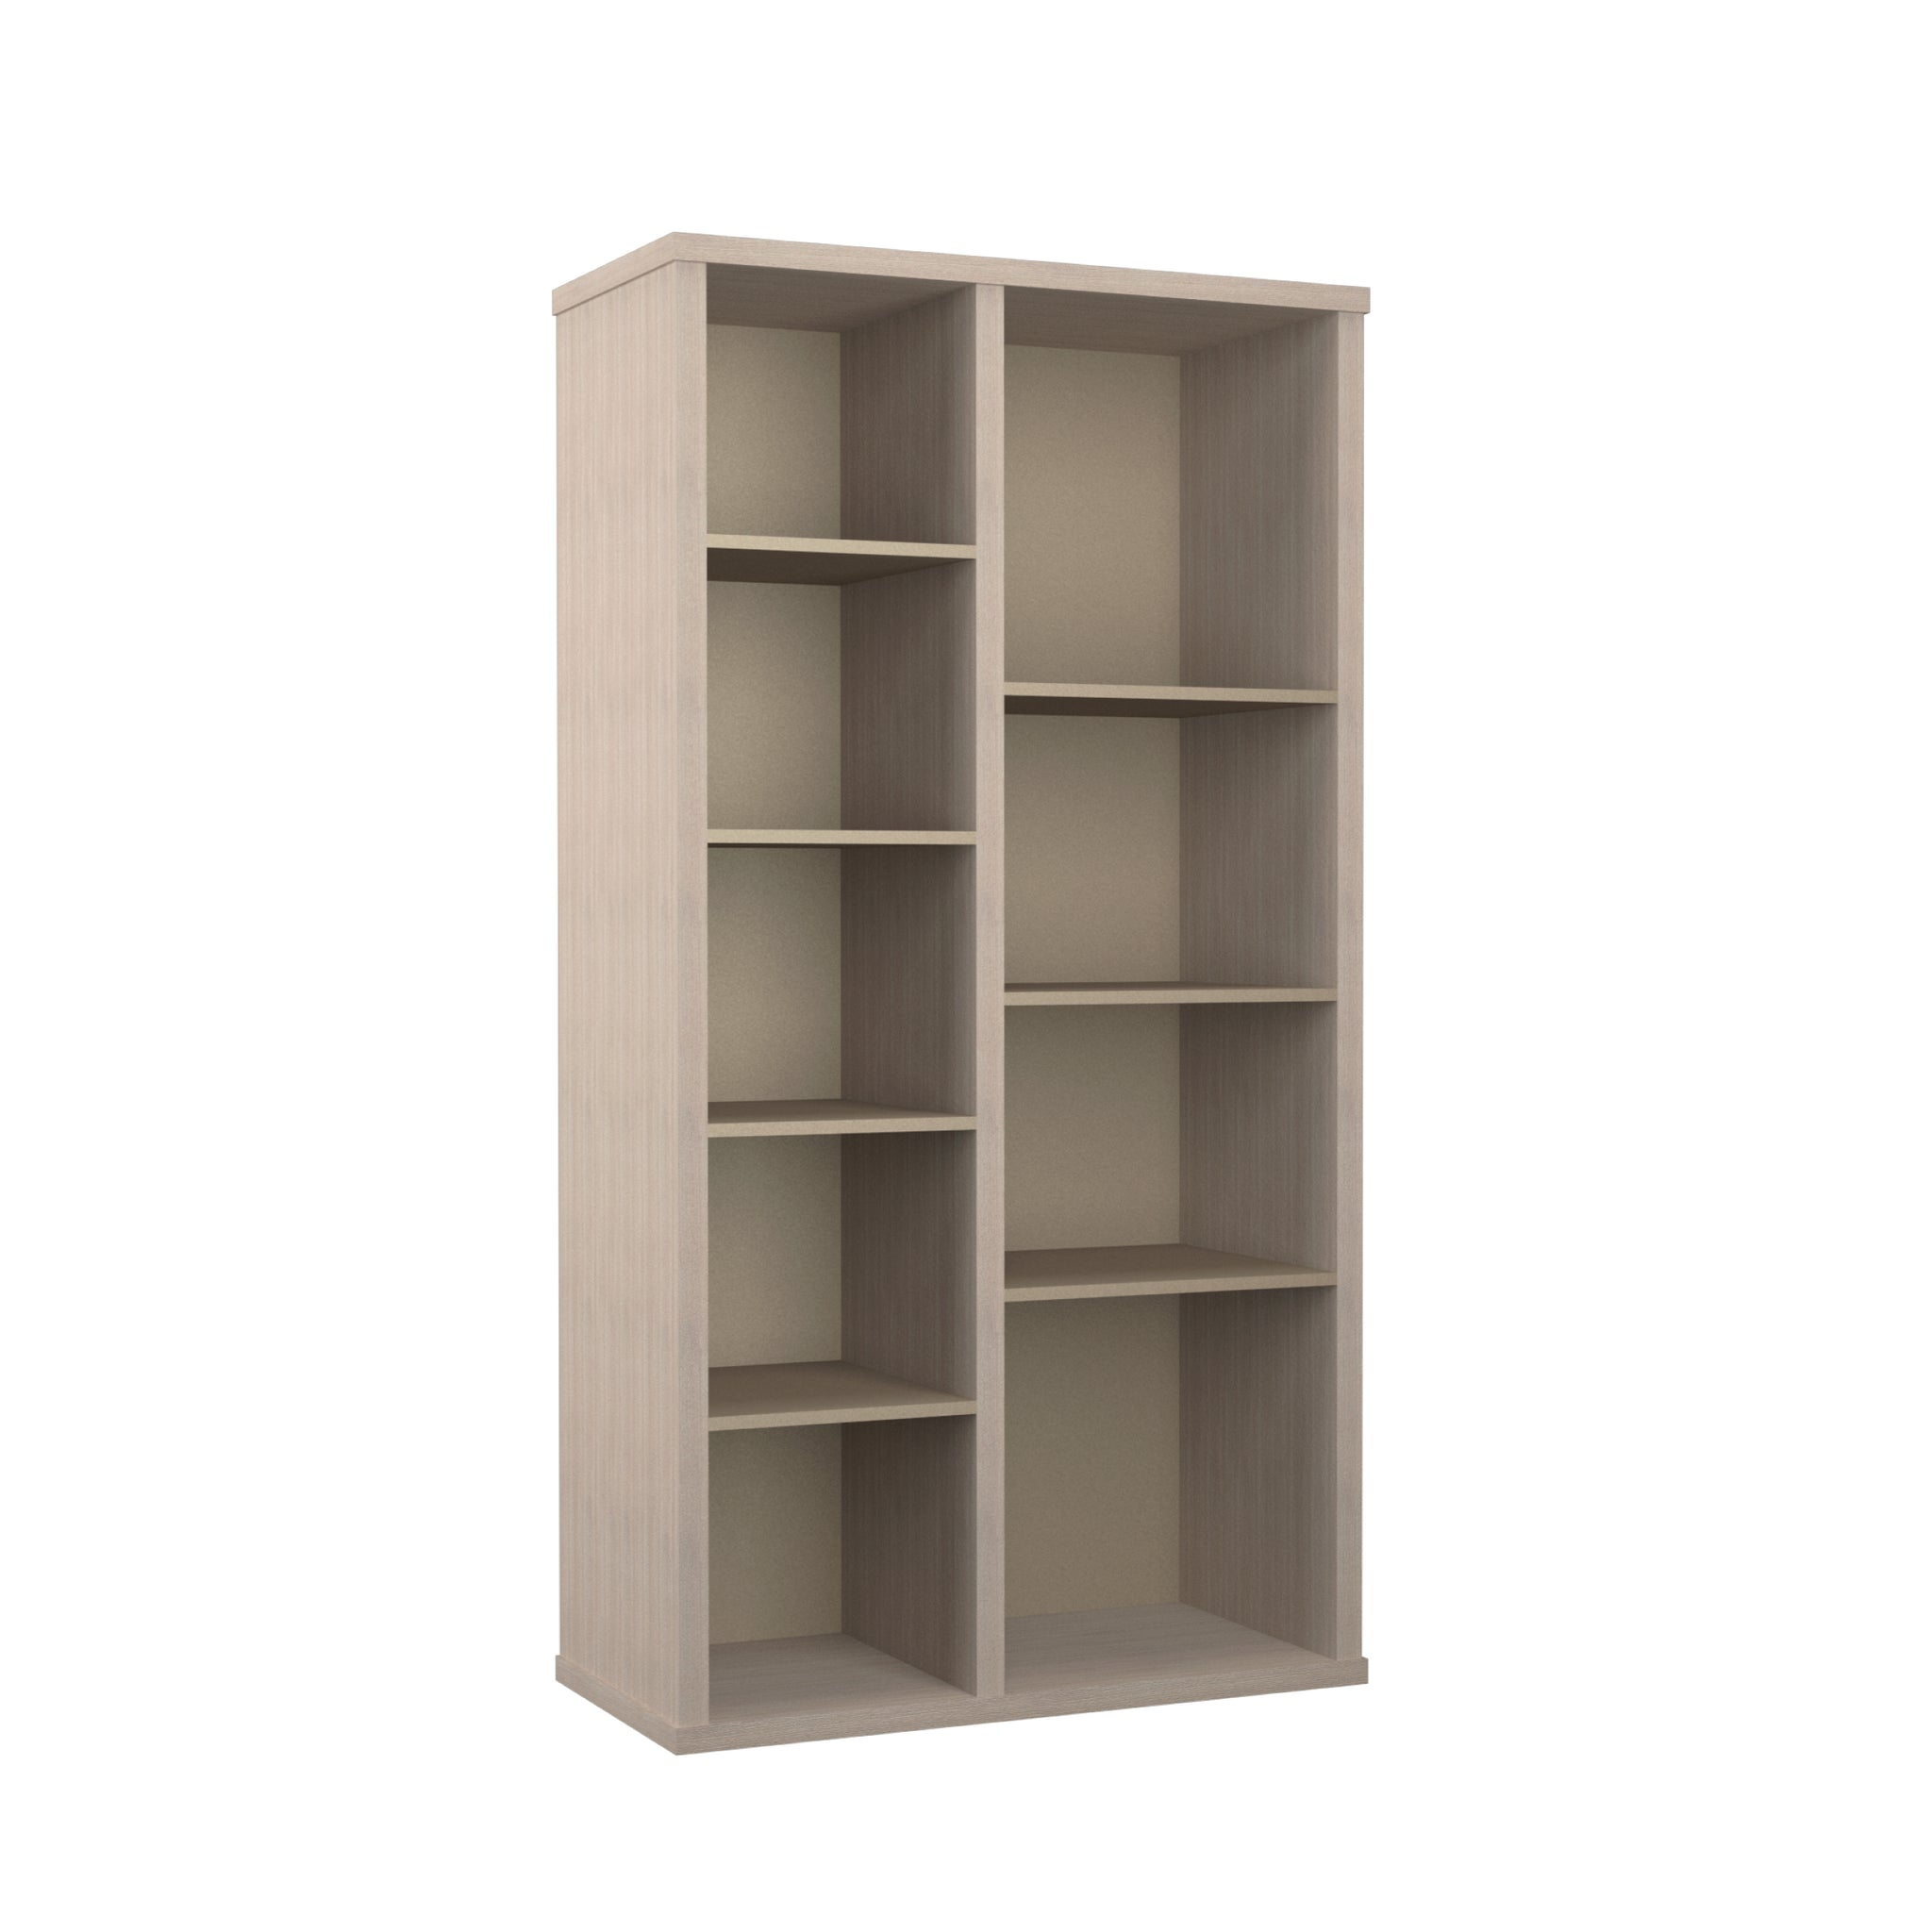 Hedcor Amber shelf storage